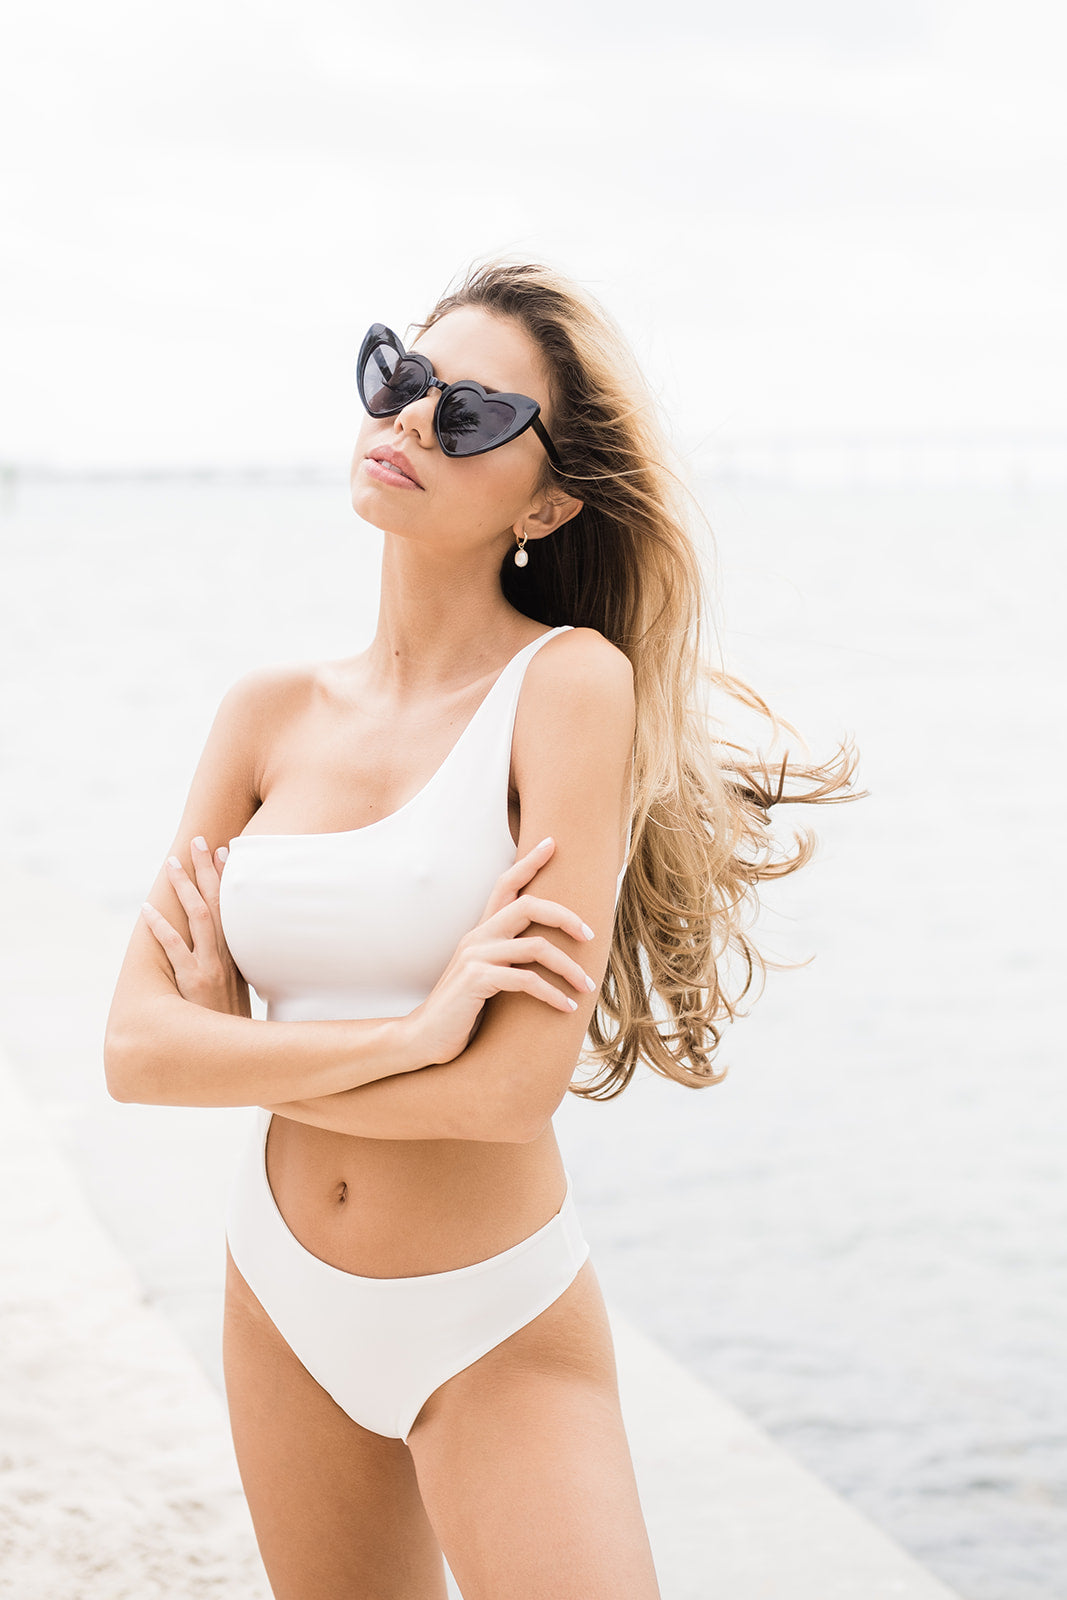 Black Heart True Love Sunglasses - The Beach Bride by Chic Parisien, a destination for beach weddings, bachelorettes and honeymoons